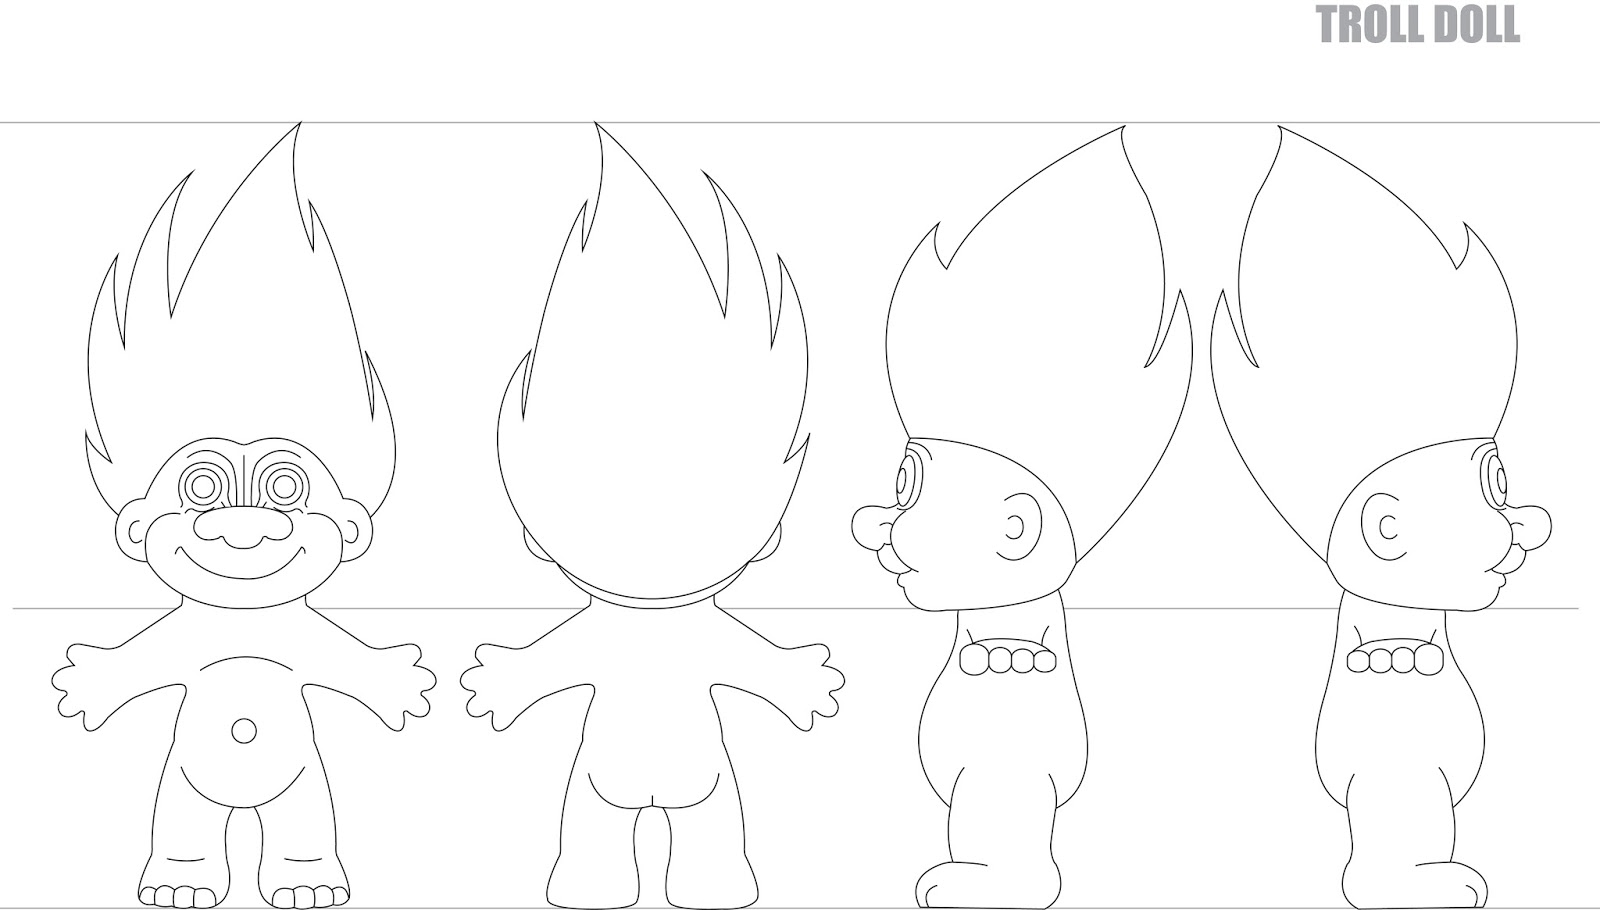 Troll Doll Model Sheet